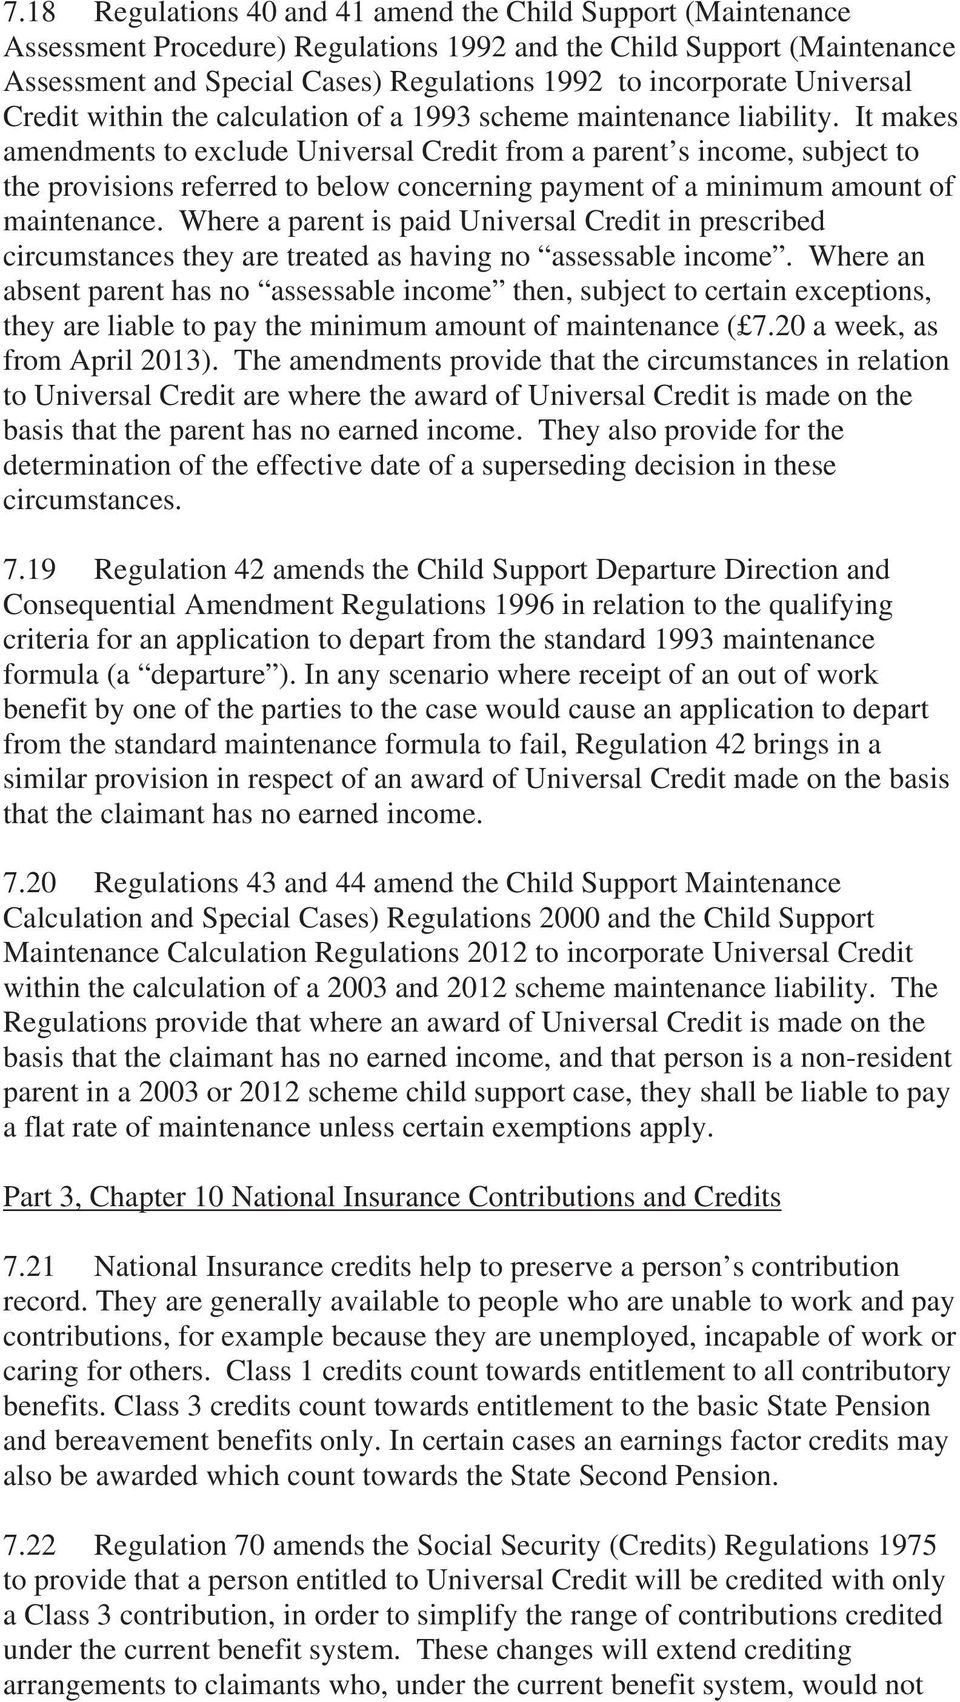 It makes amendments to exclude Universal Credit from a parent s income, subject to the provisions referred to below concerning payment of a minimum amount of maintenance.